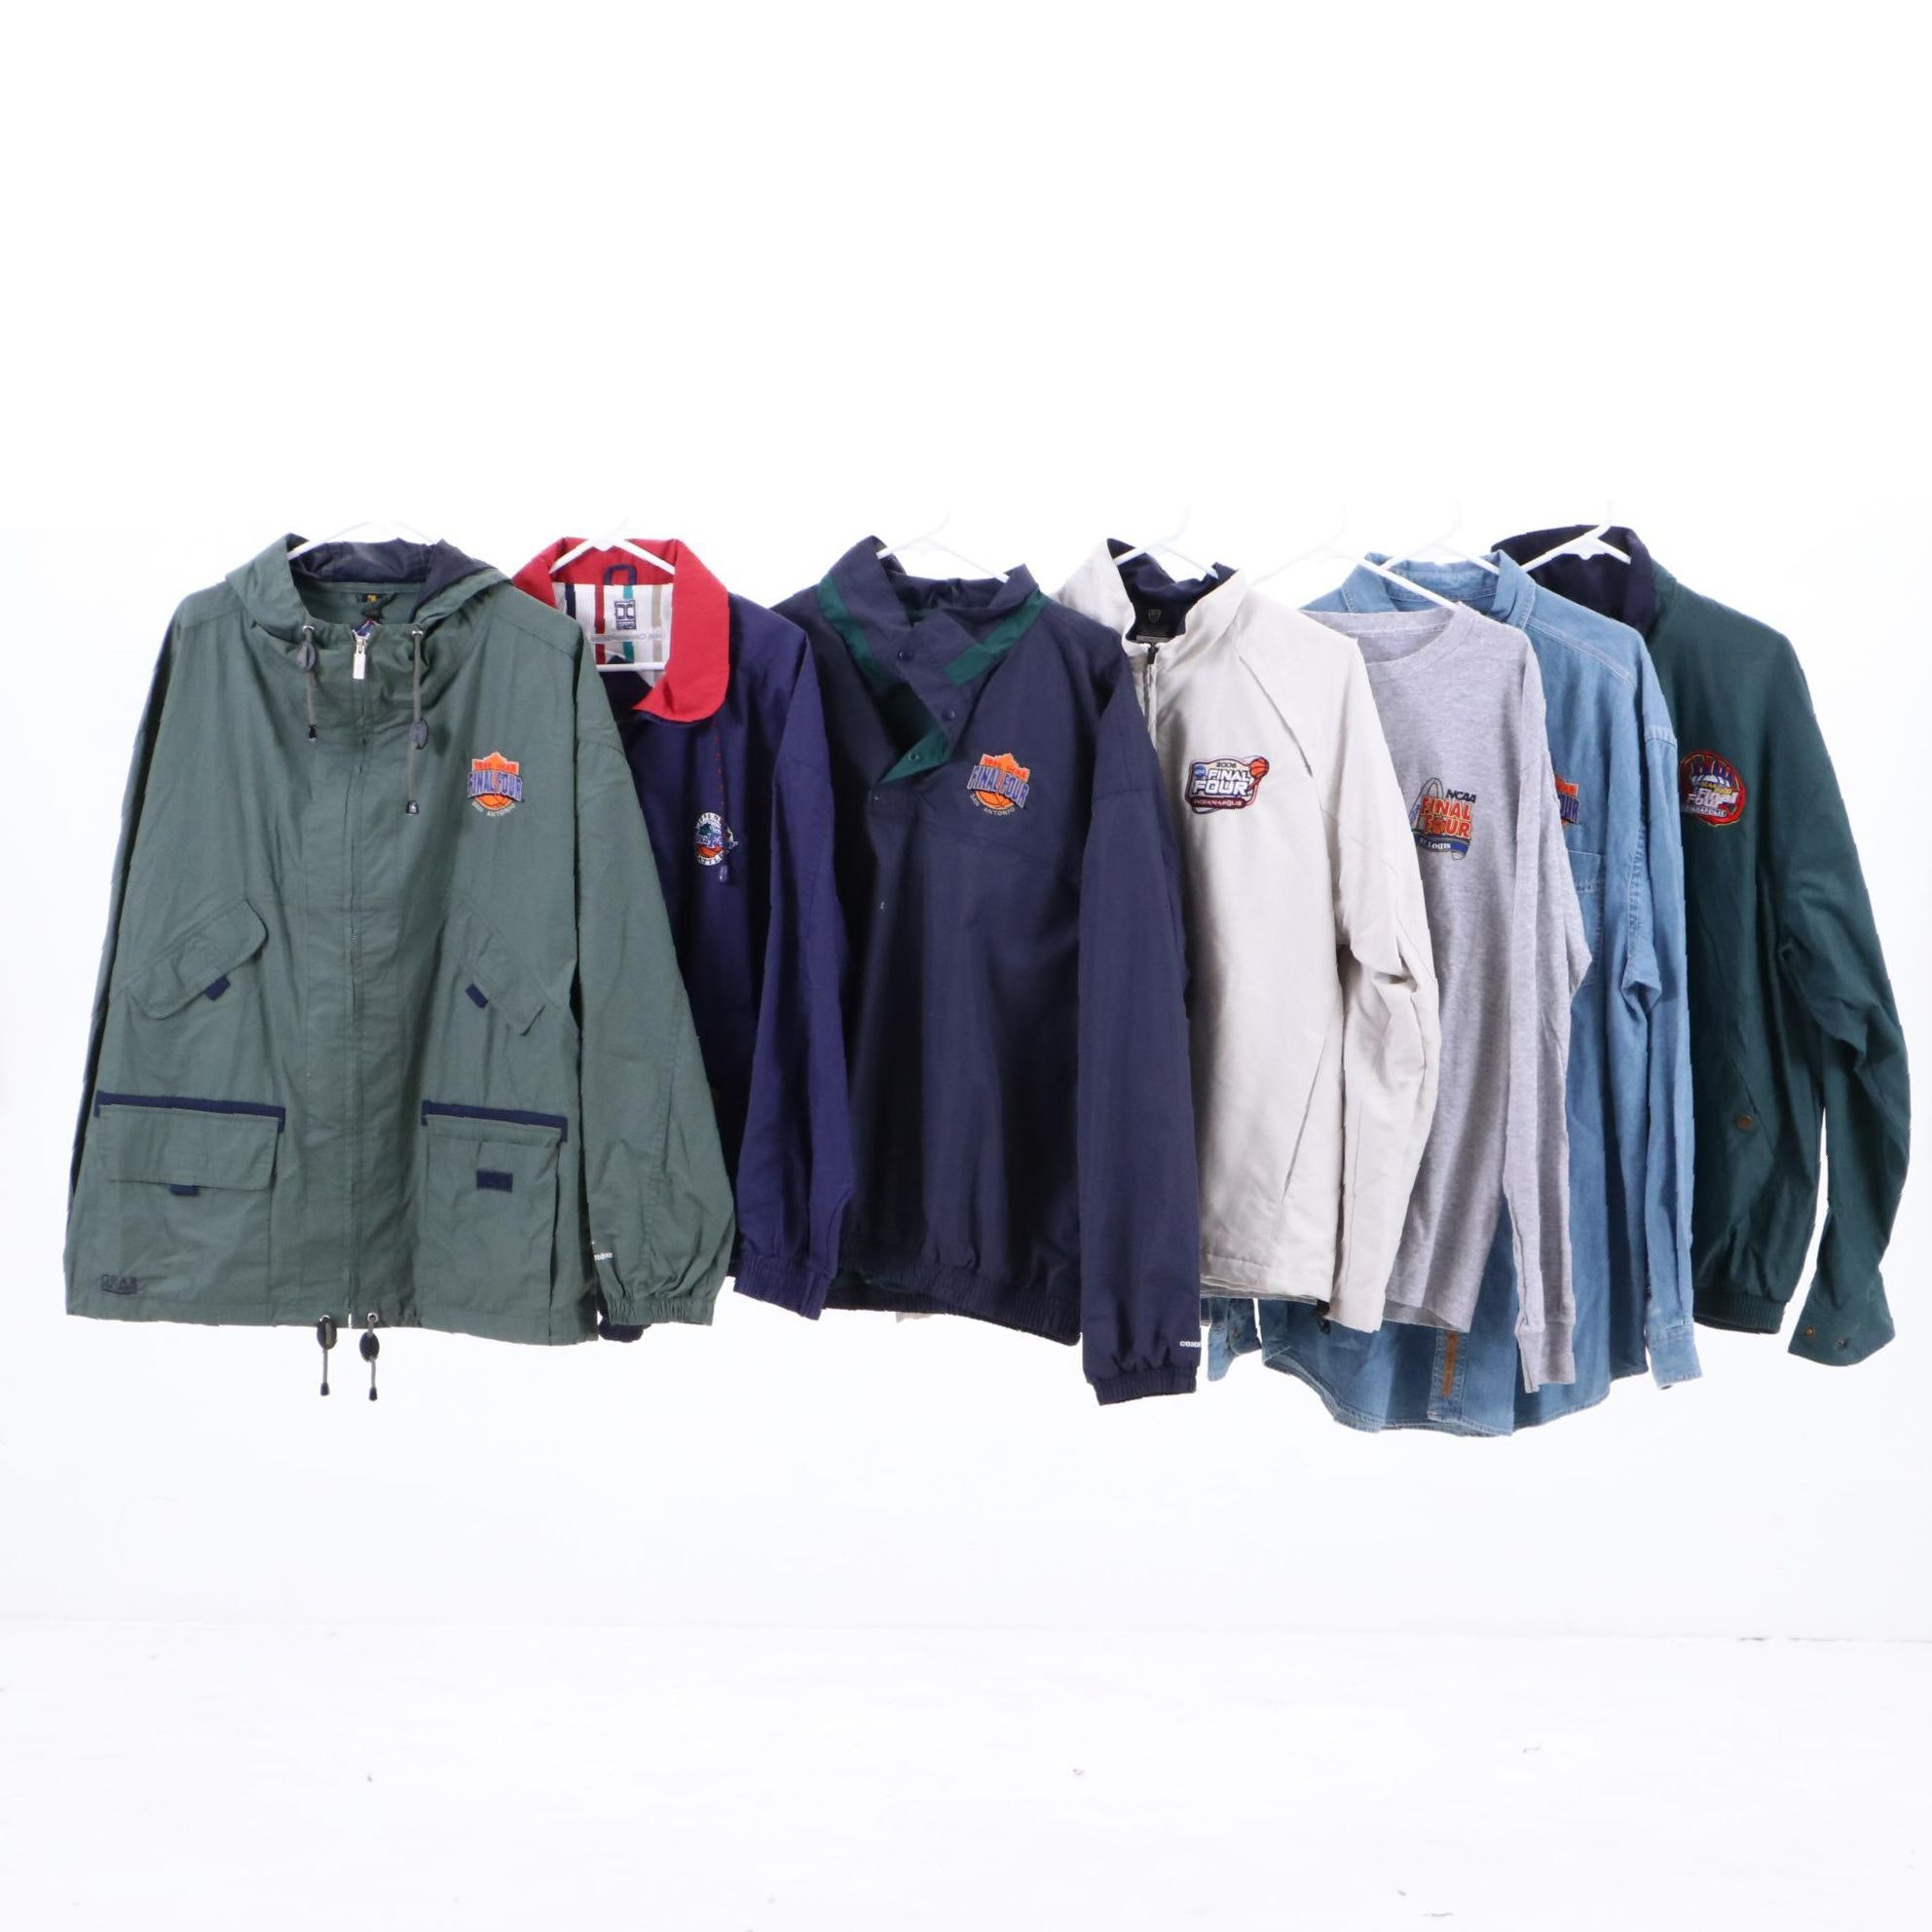 Men's Final Four Outerwear and Shirts Including Nike and More